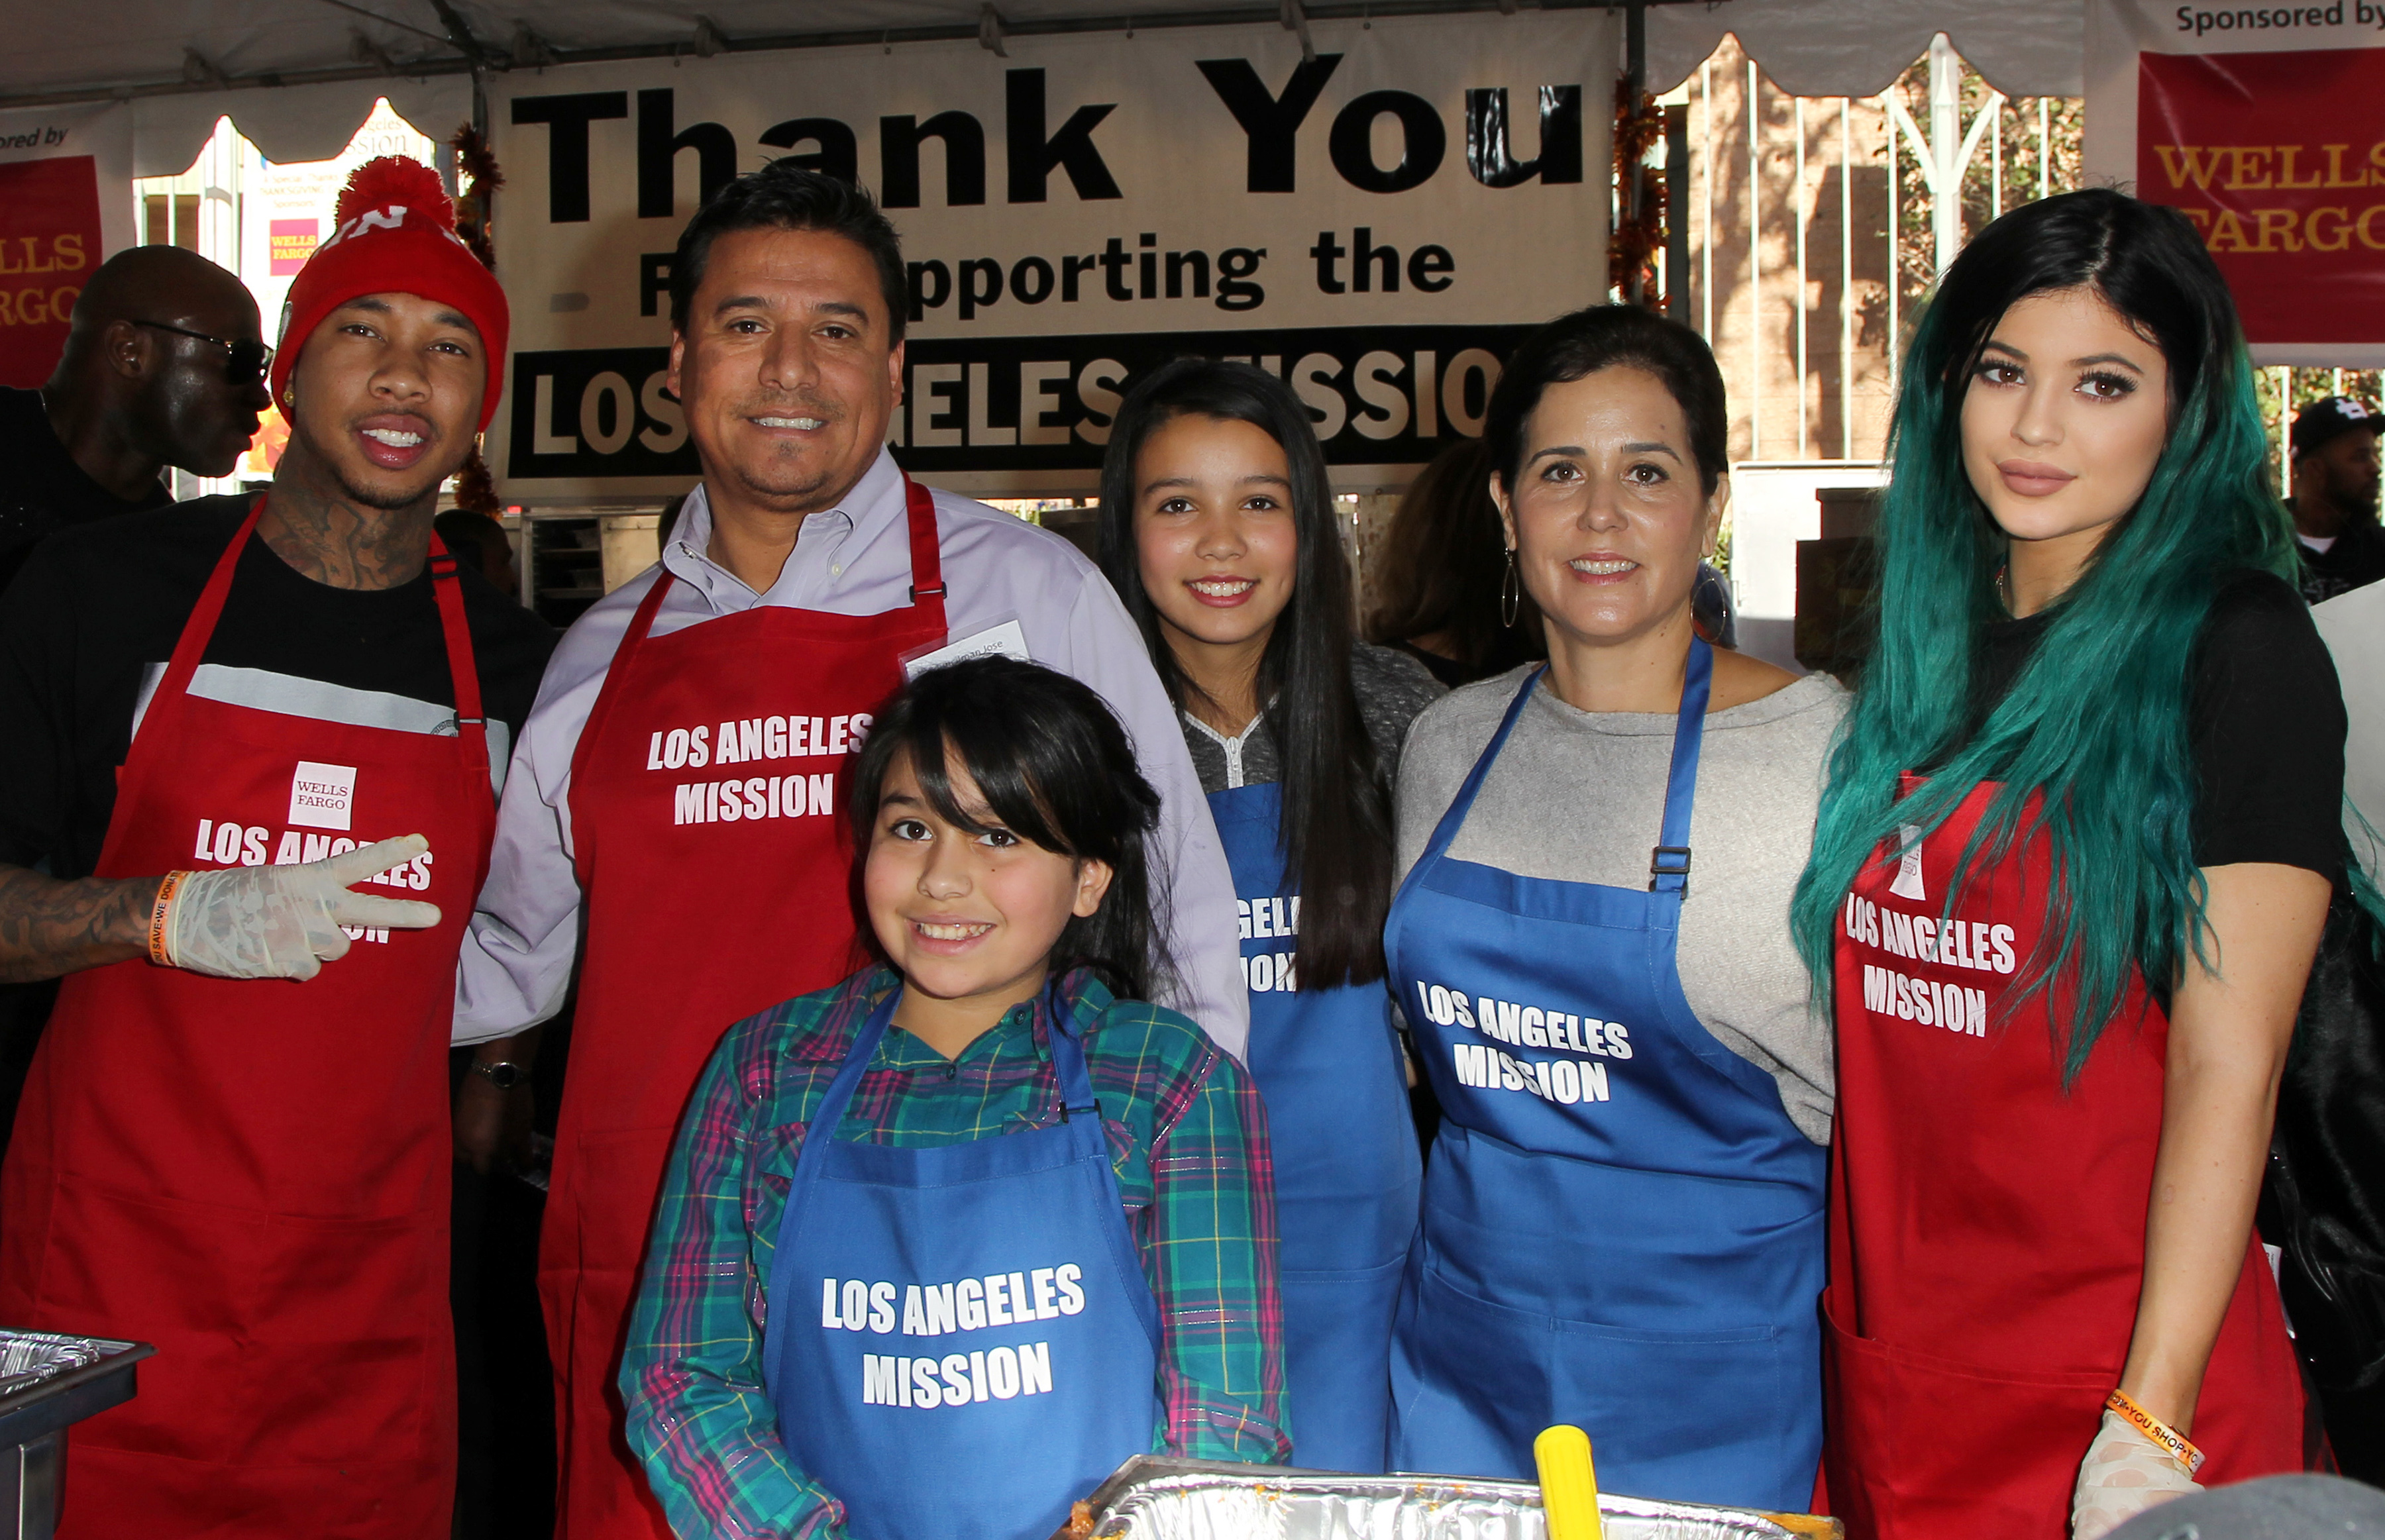 Kylie Jenner and Tyga at LA Soup Kitchen Thanksgiving 2014